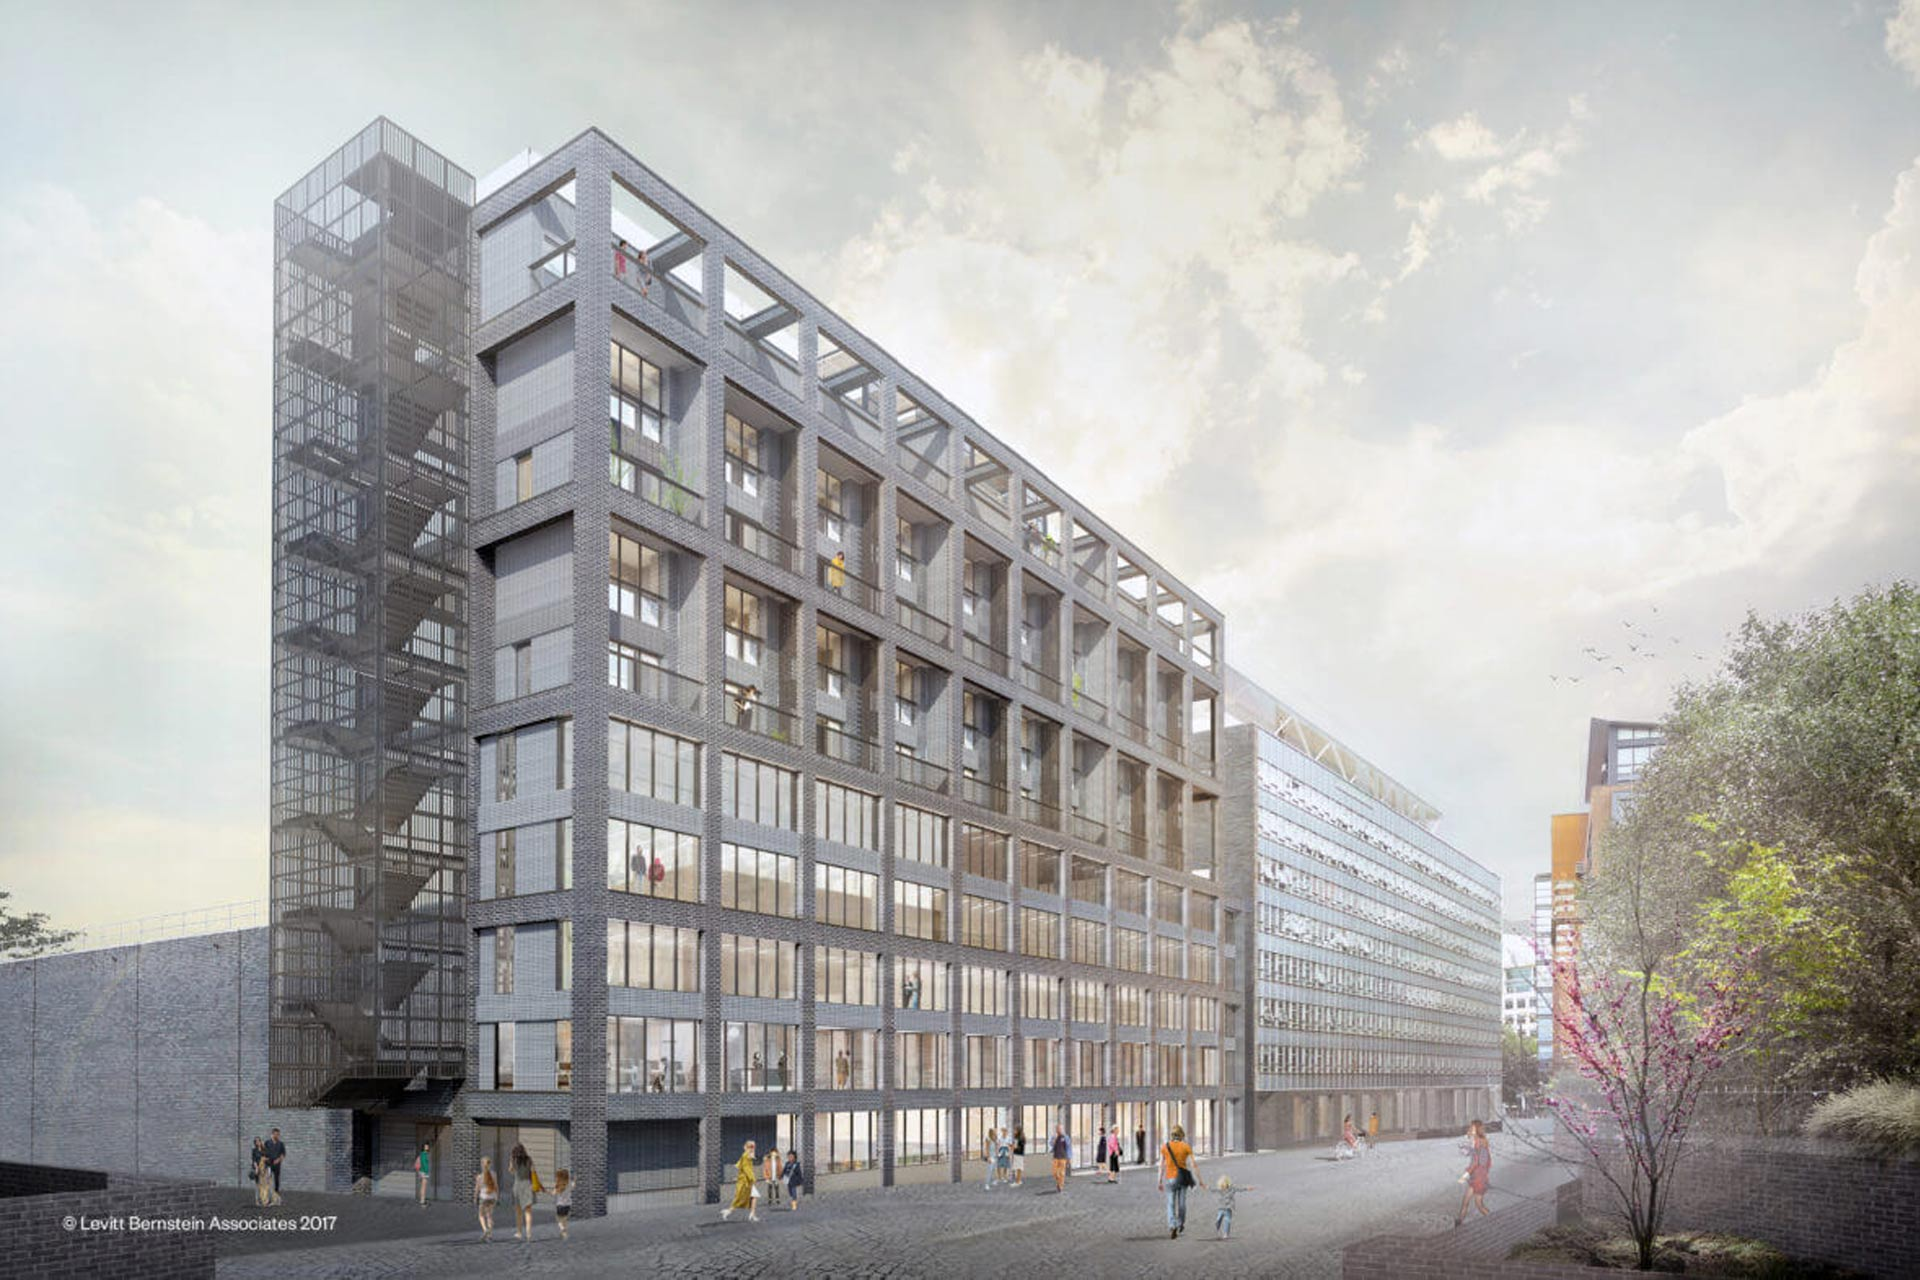 A rendering of the Old Granada Studios in Manchester